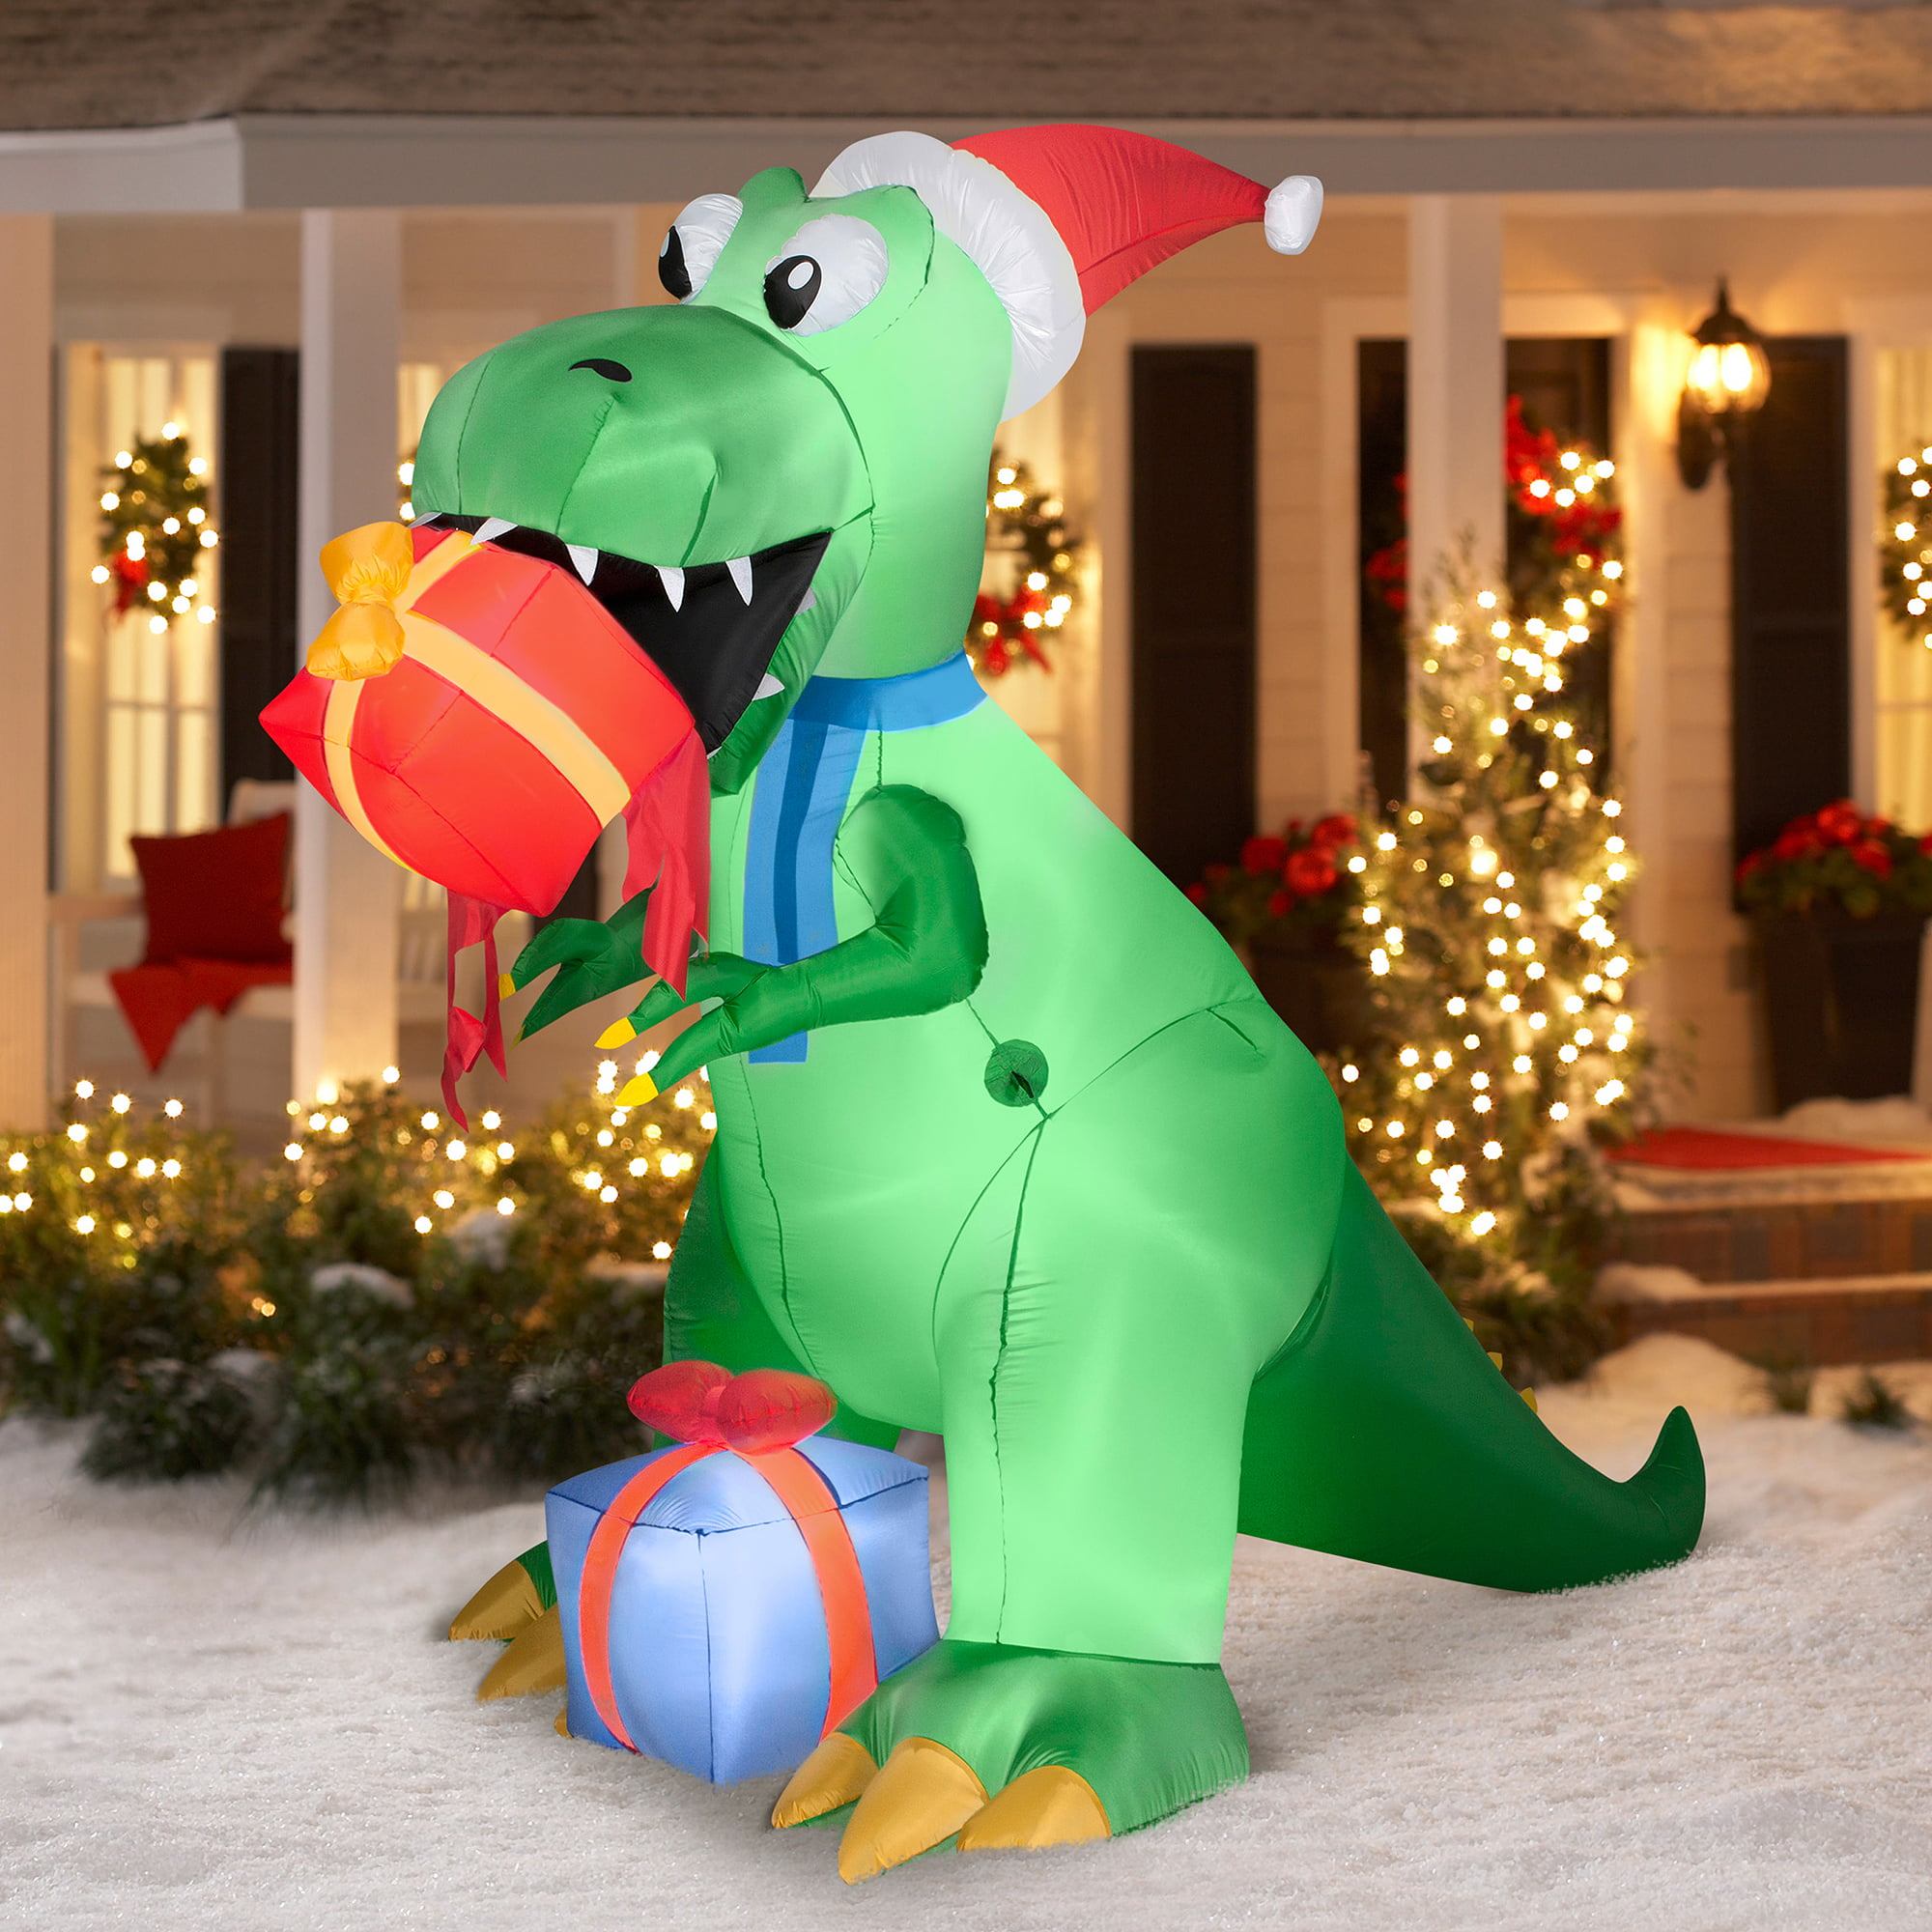 75 t rex with present airblown inflatable christmas prop walmartcom - Walmart Christmas Lawn Decorations